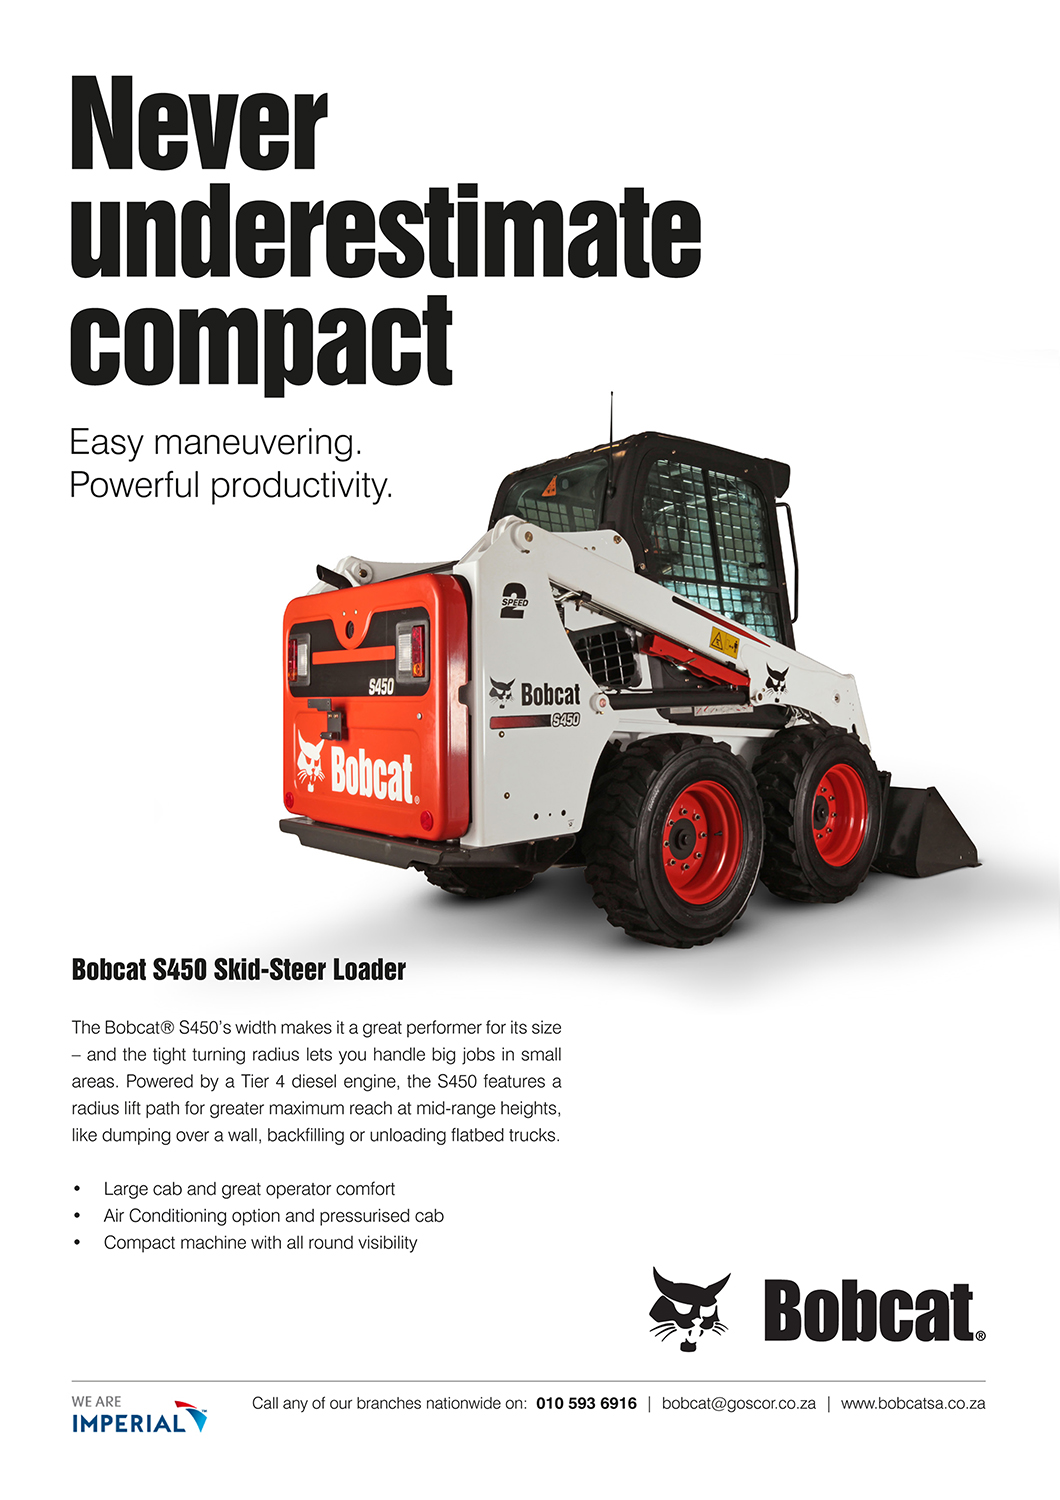 Magazine and Email Advertising for Bobcat